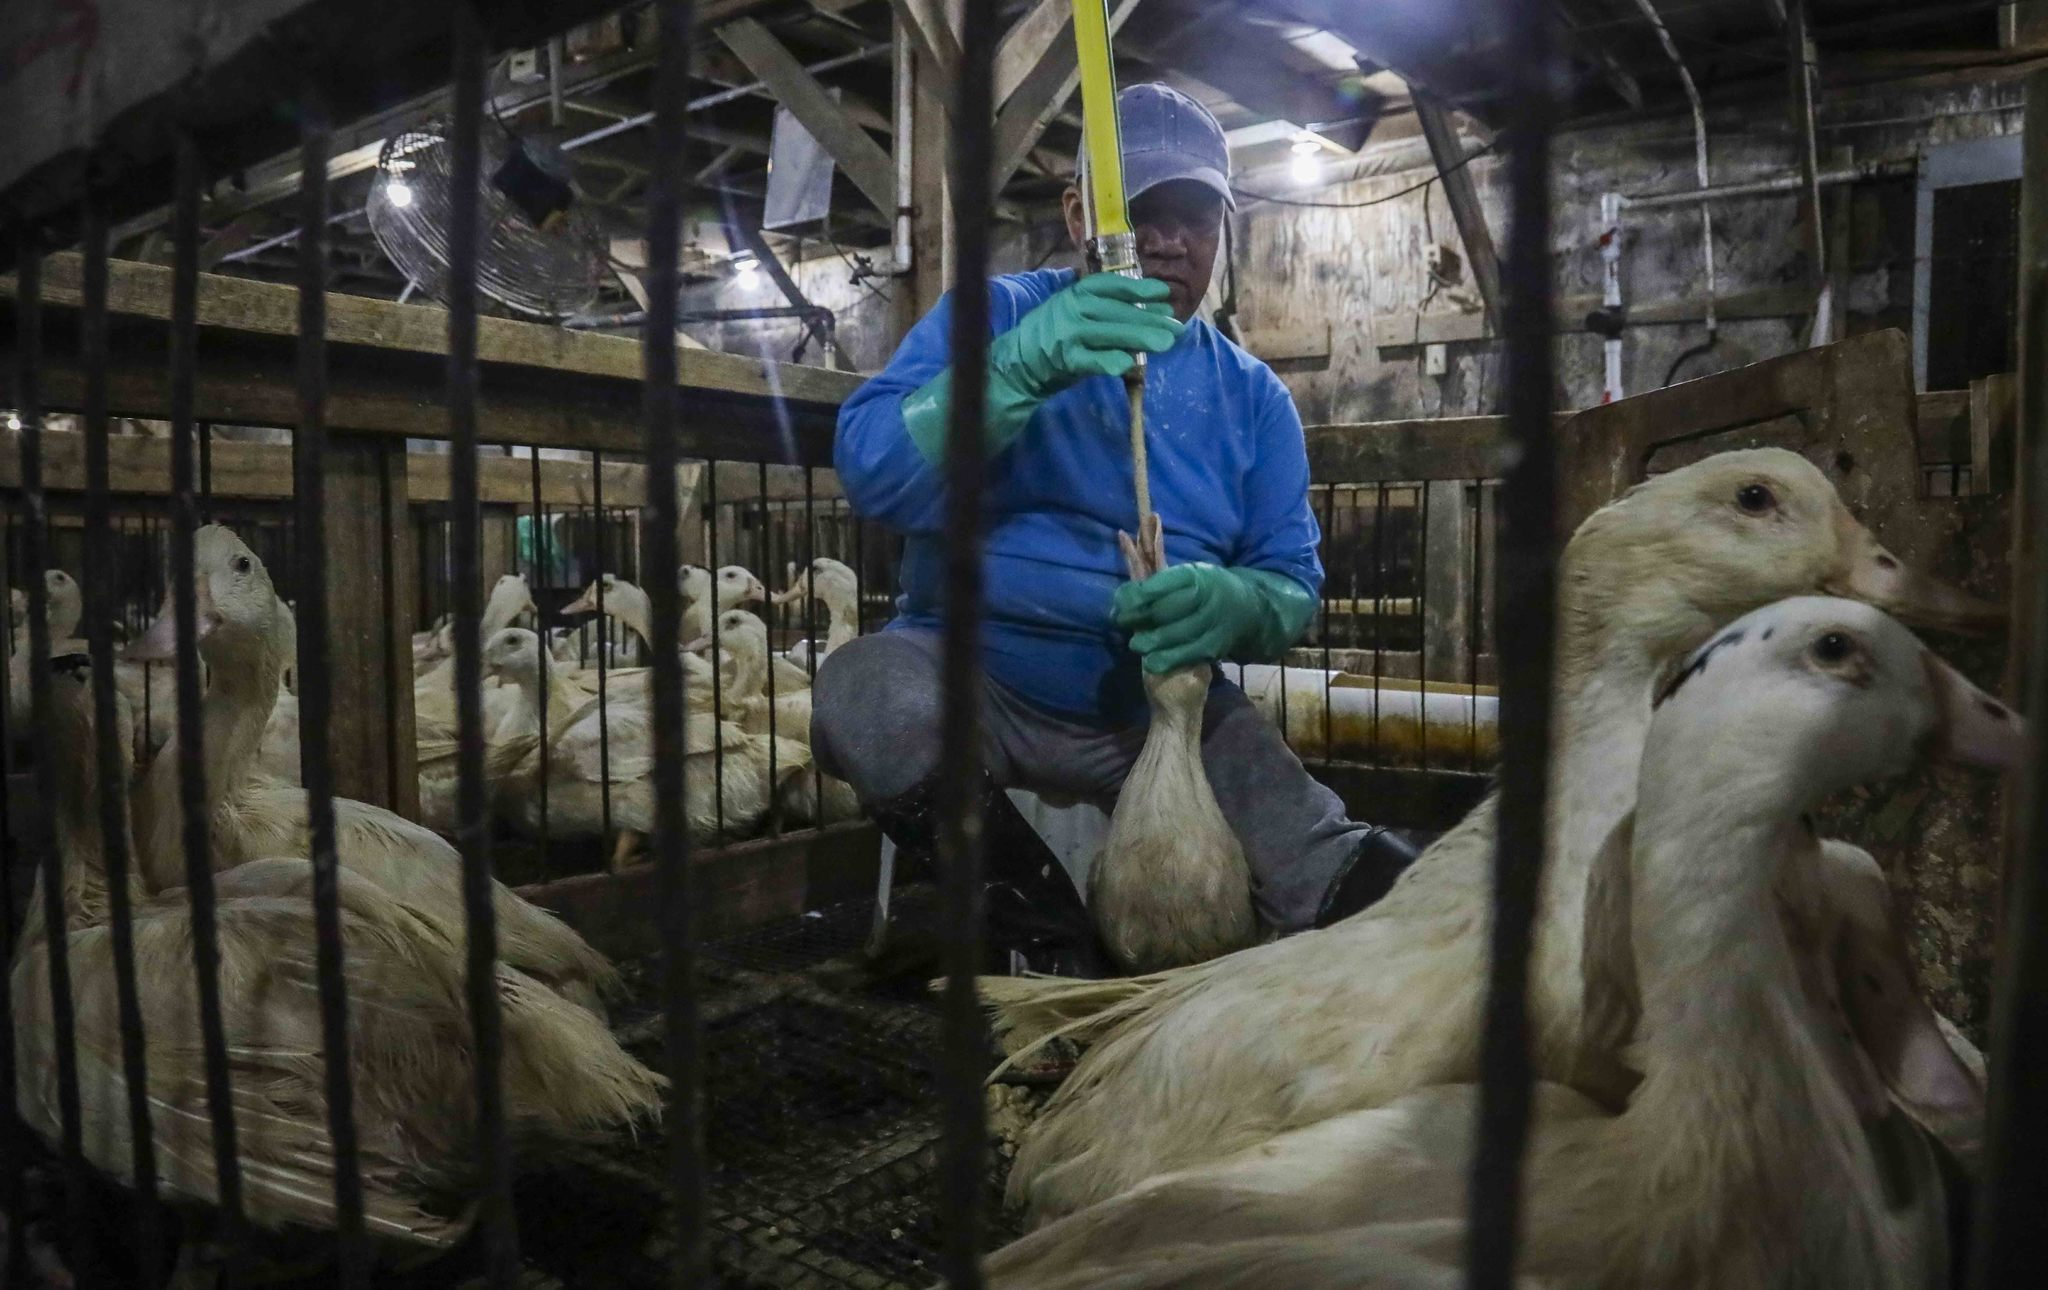 Ducking the hard issues: The city's foie gras ban works more as symbolism than as policy